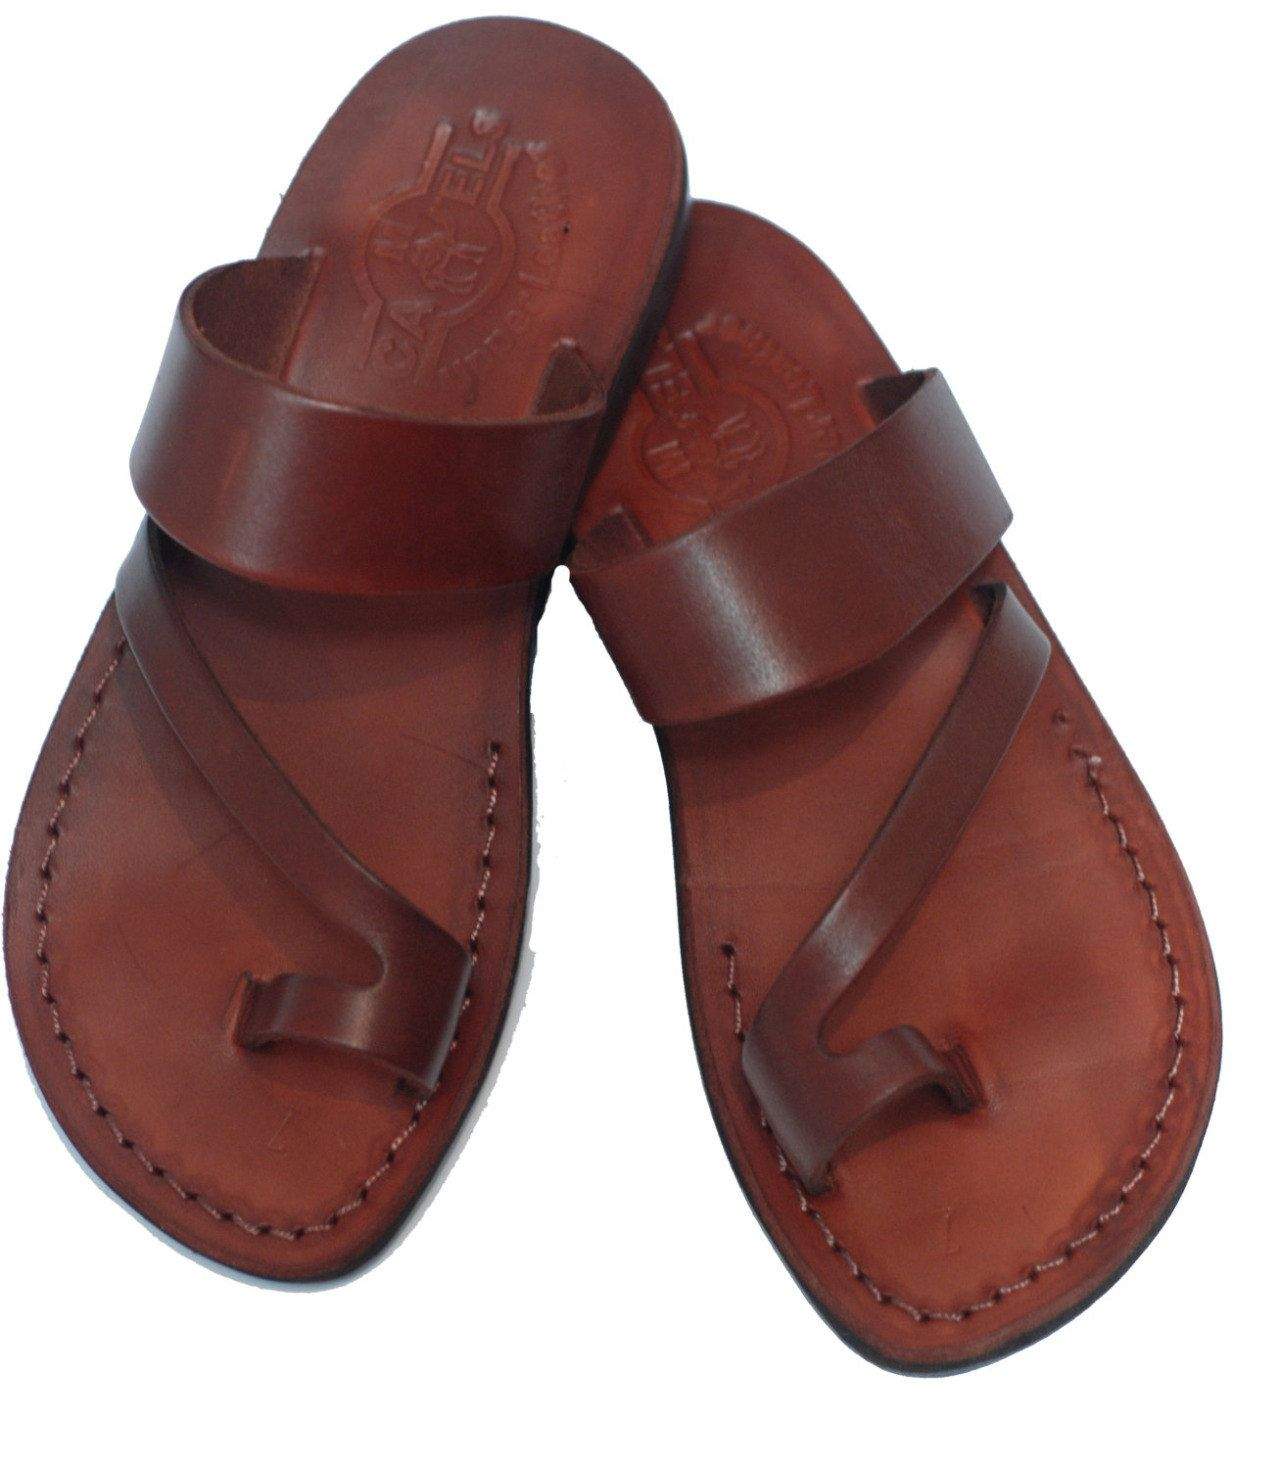 Womens sandals etsy - Leather Sandals Leather Slippers Women Leather Sandals Woman Brown Leather Sandals Handmade